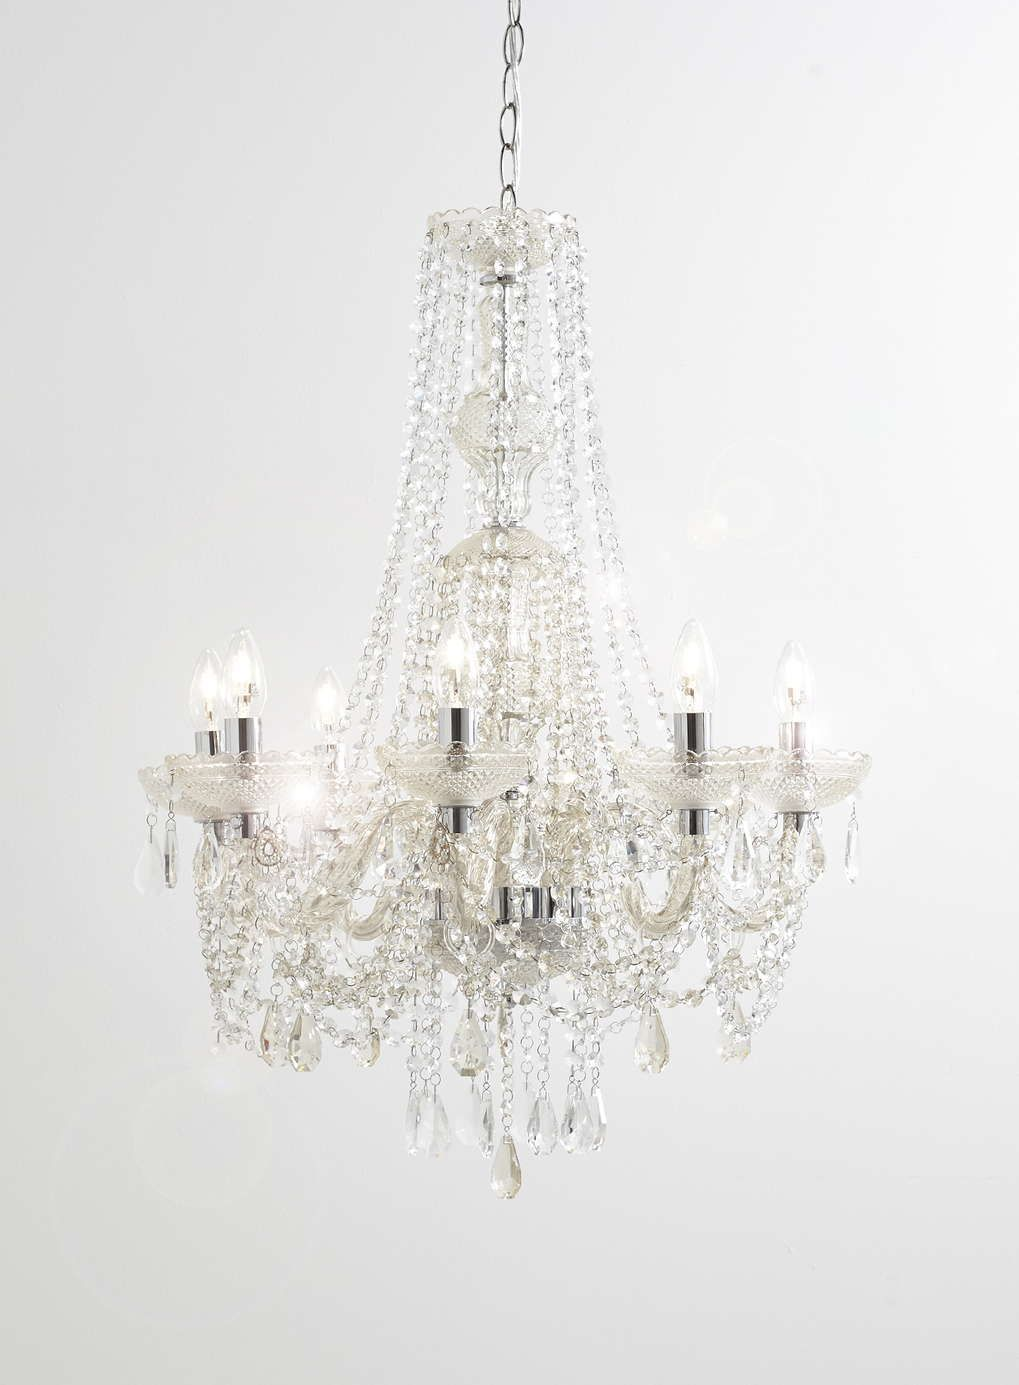 Bathroom Chandeliers Bhs alexandria chandelier - bhs £350 dimensions: height with ceiling